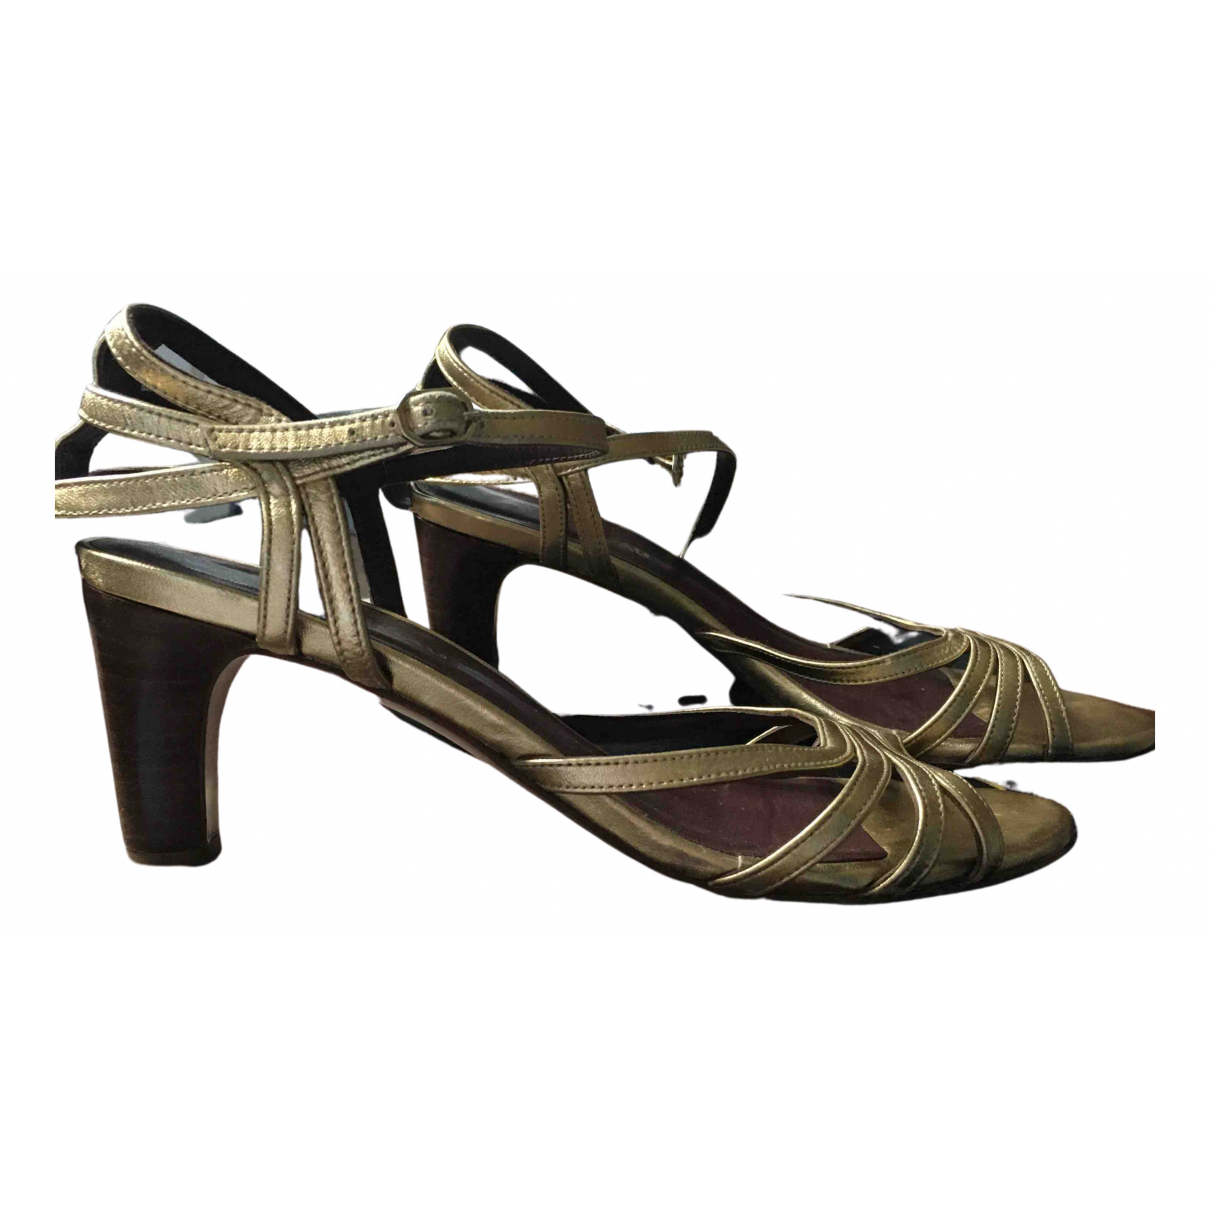 Avril Gau N Gold Leather Sandals for Women 38 EU